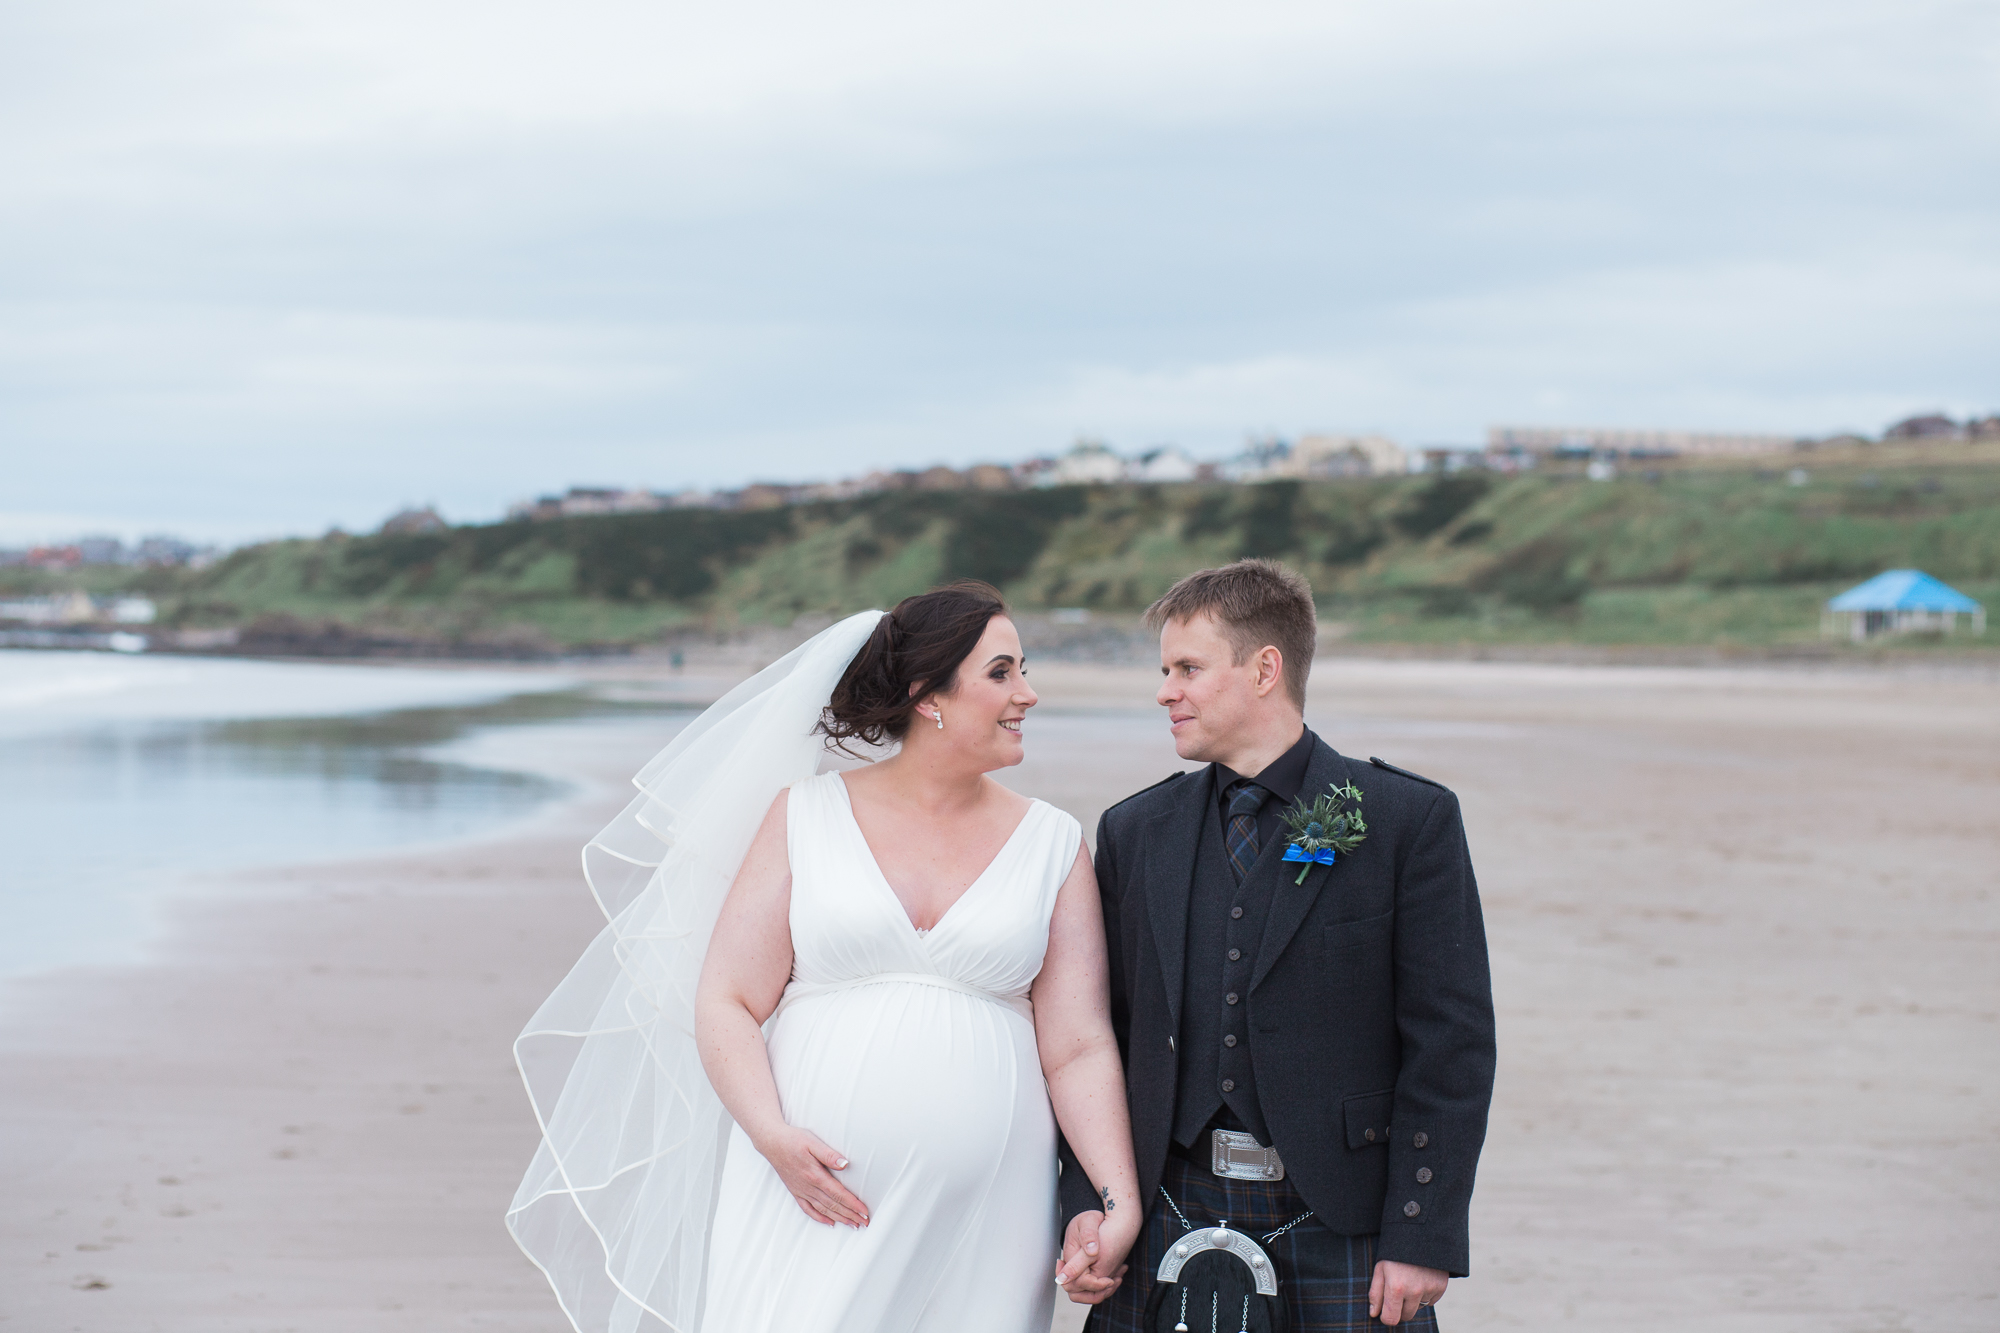 beachweddingscotland (1 of 1).jpg